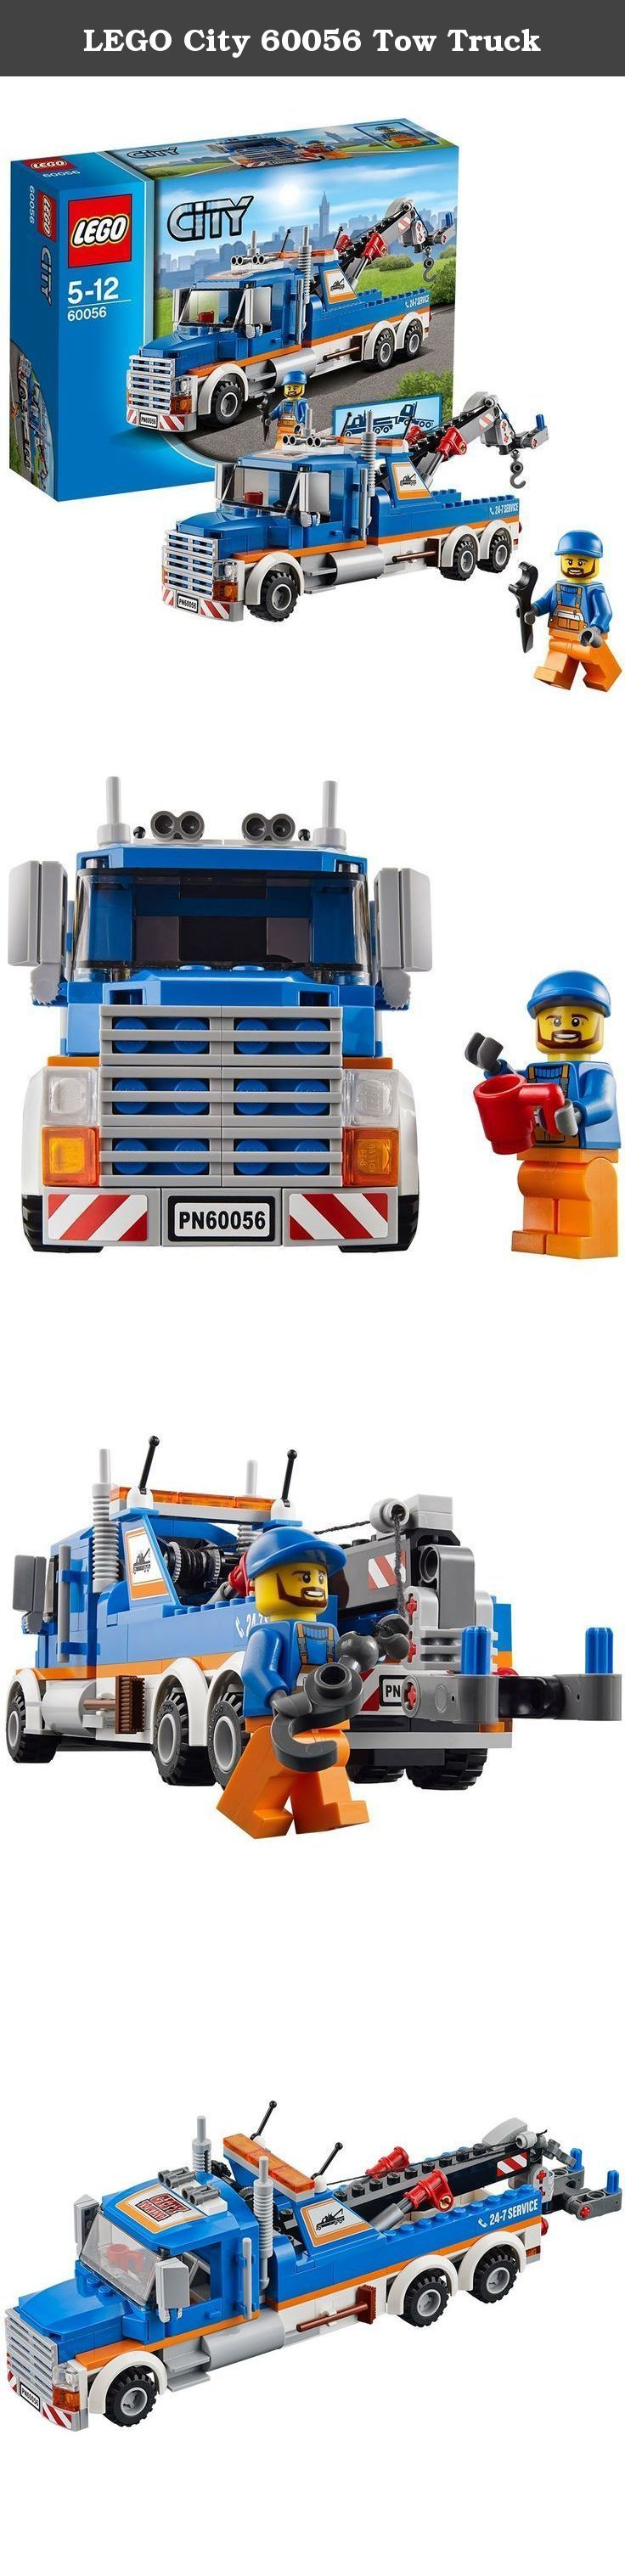 LEGO City 60056 Tow Truck. When the biggest trucks in LEGO City break down, it's time to call in the heavy-duty Tow Truck! Lower the crane arm, attach the working winch and grab the stricken vehicle to secure it. There's just time for a quick clean up with the broom, then jump the driver back in the driving seat and tow the vehicle away for repair. With the awesome Tow Truck, the LEGO City traffic will always keep moving! Collect this and all the other vehicles in the Great Vehicles…